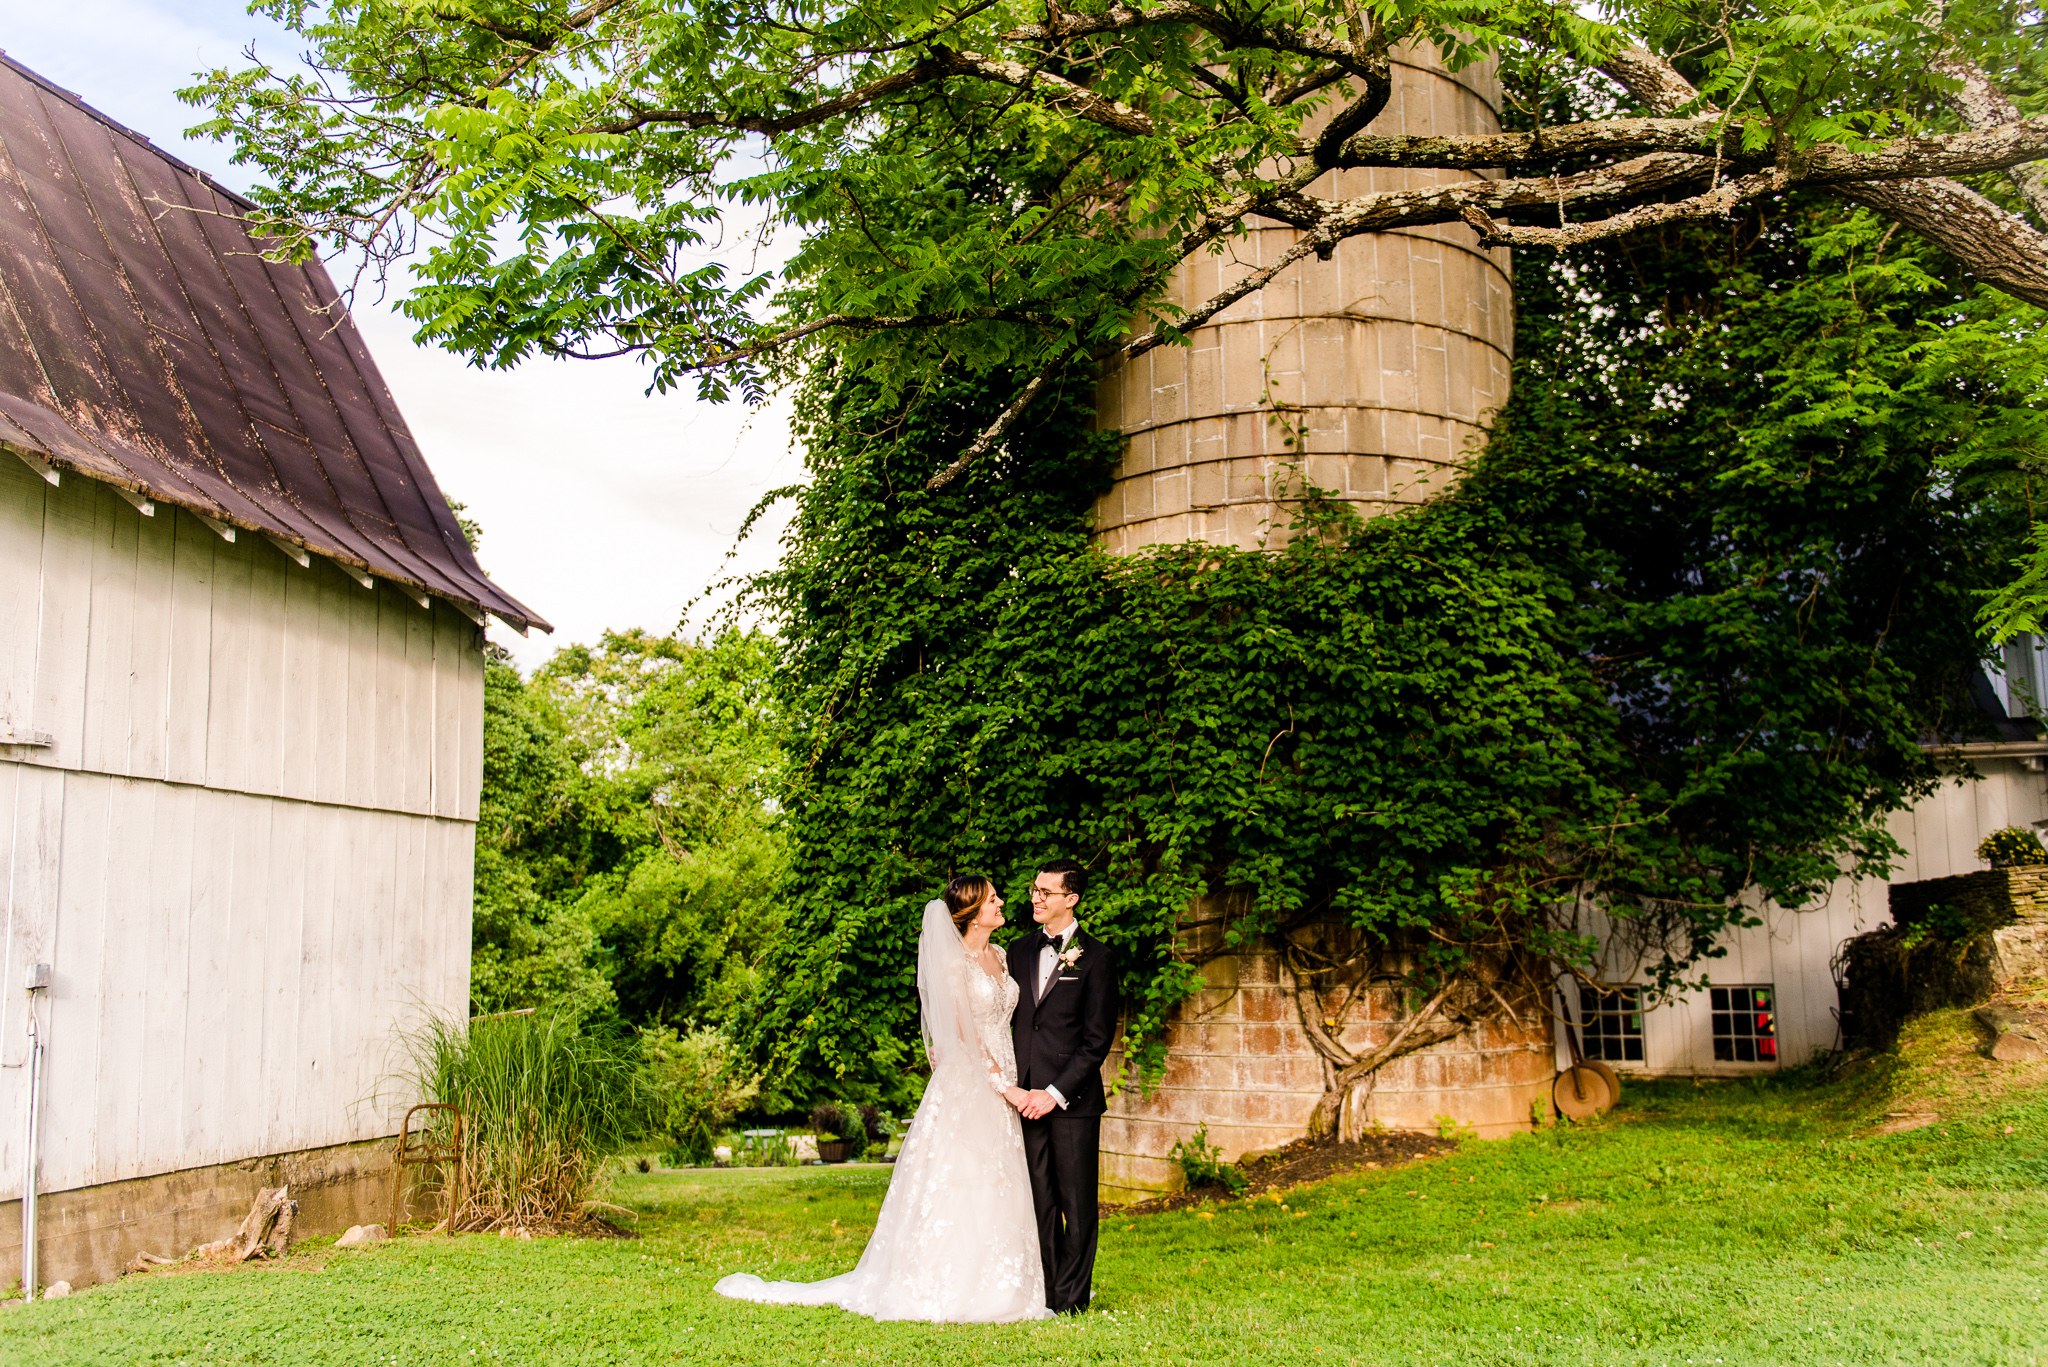 A bride and groom hold hands in front of a silo covered in greenery during golden hour at The Barns at Hamilton Station Vineyard in Leesburg, Northern Virginia